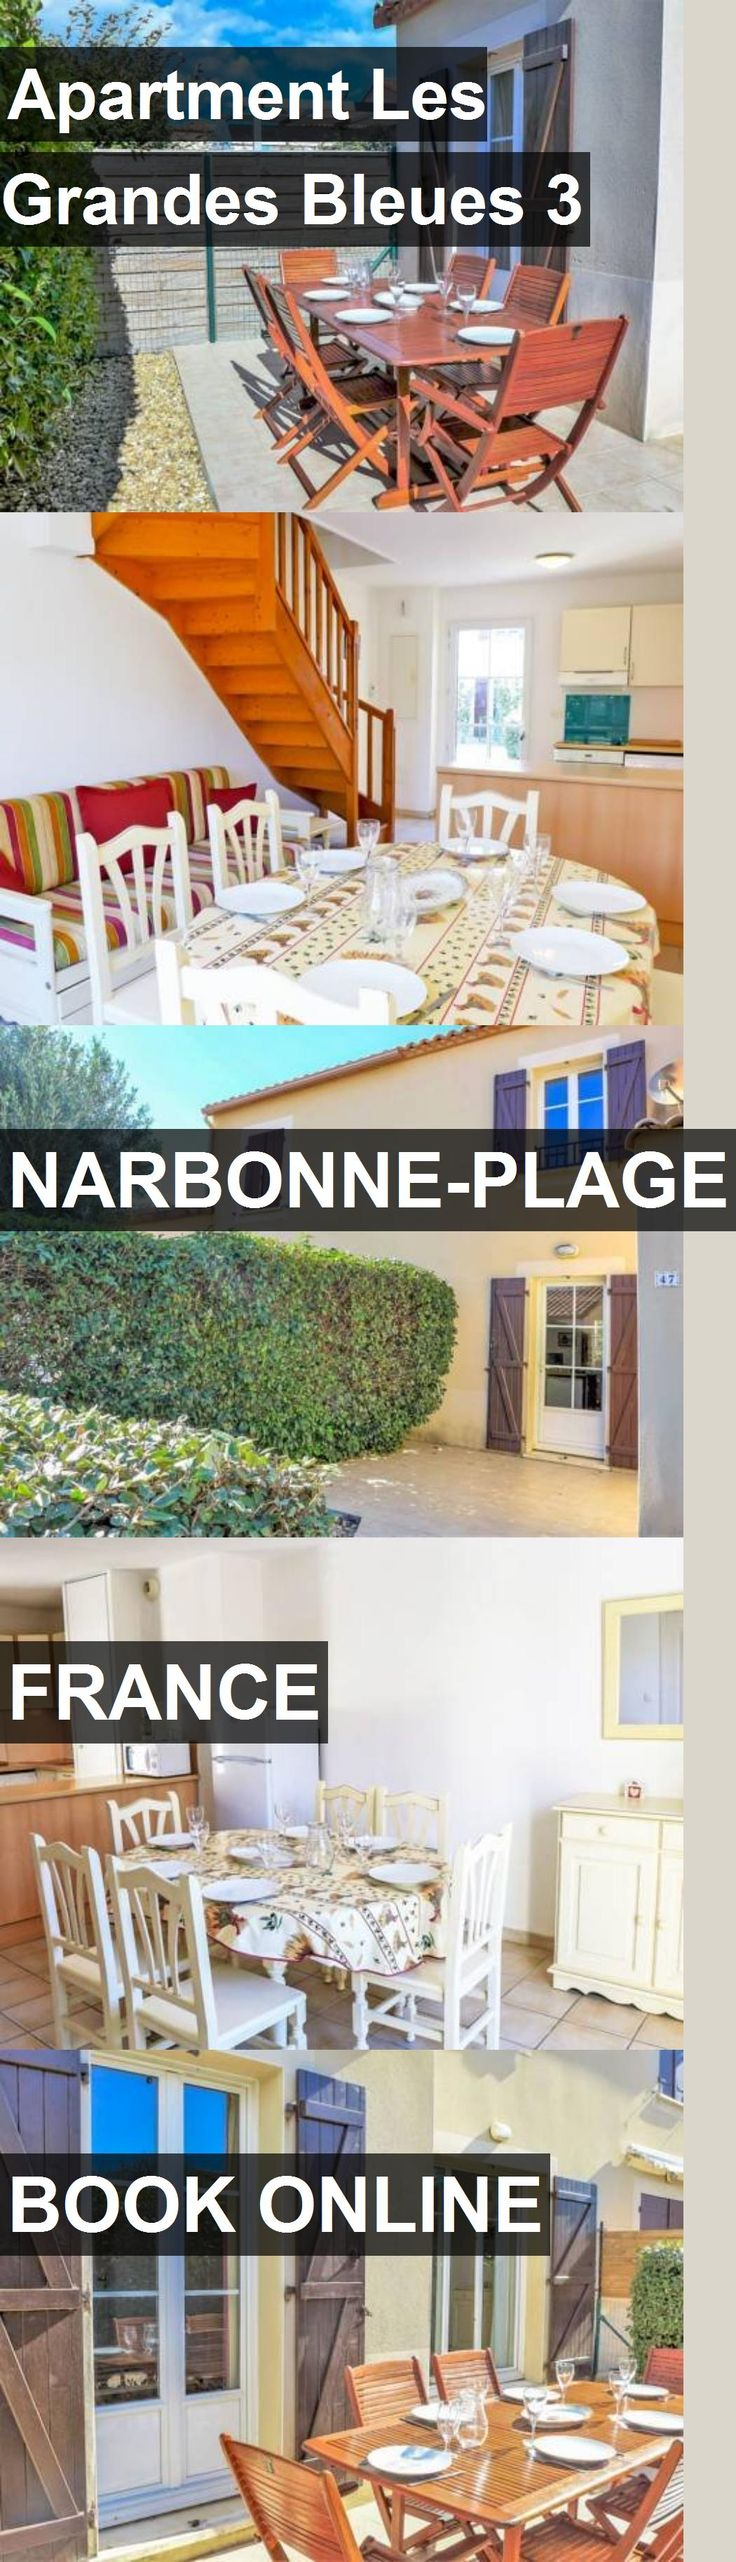 Apartment Les Grandes Bleues 3 in Narbonne-Plage, France. For more information, photos, reviews and best prices please follow the link. #France #Narbonne-Plage #travel #vacation #apartment